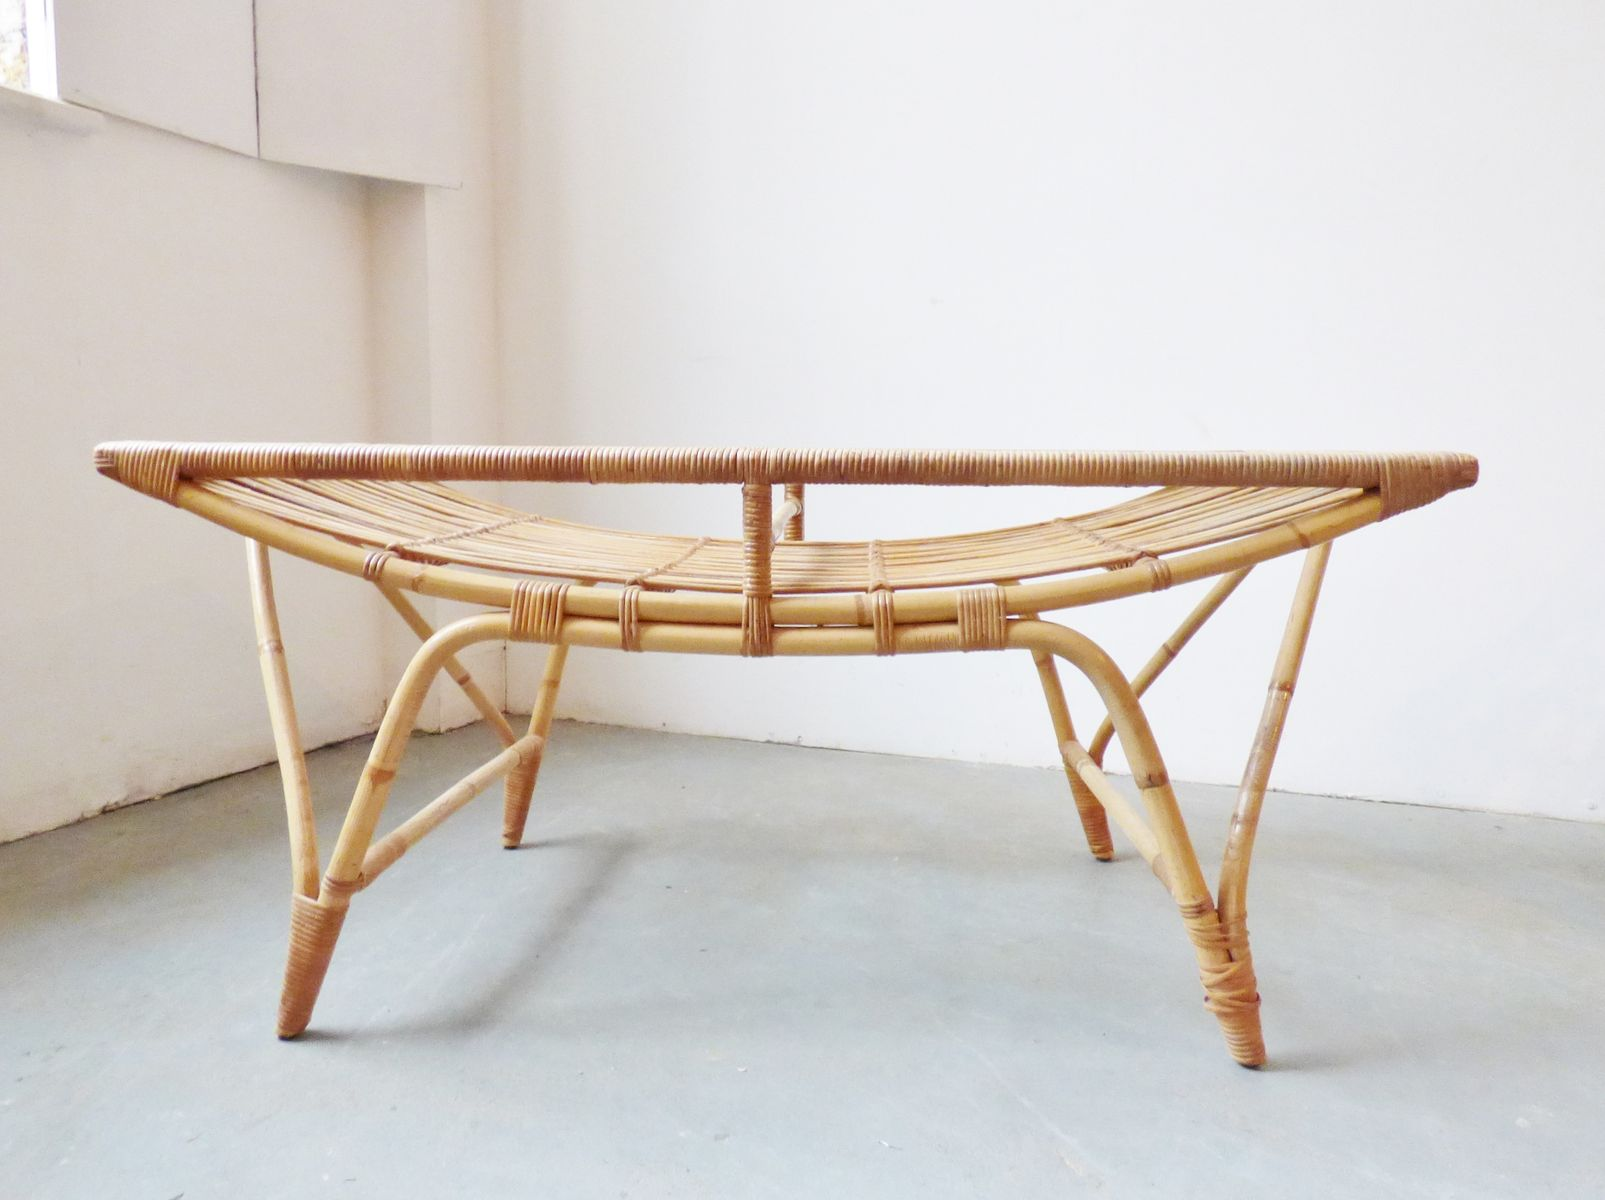 Vintage Danish Bamboo Coffee Table with Glass Top for sale at Pamono